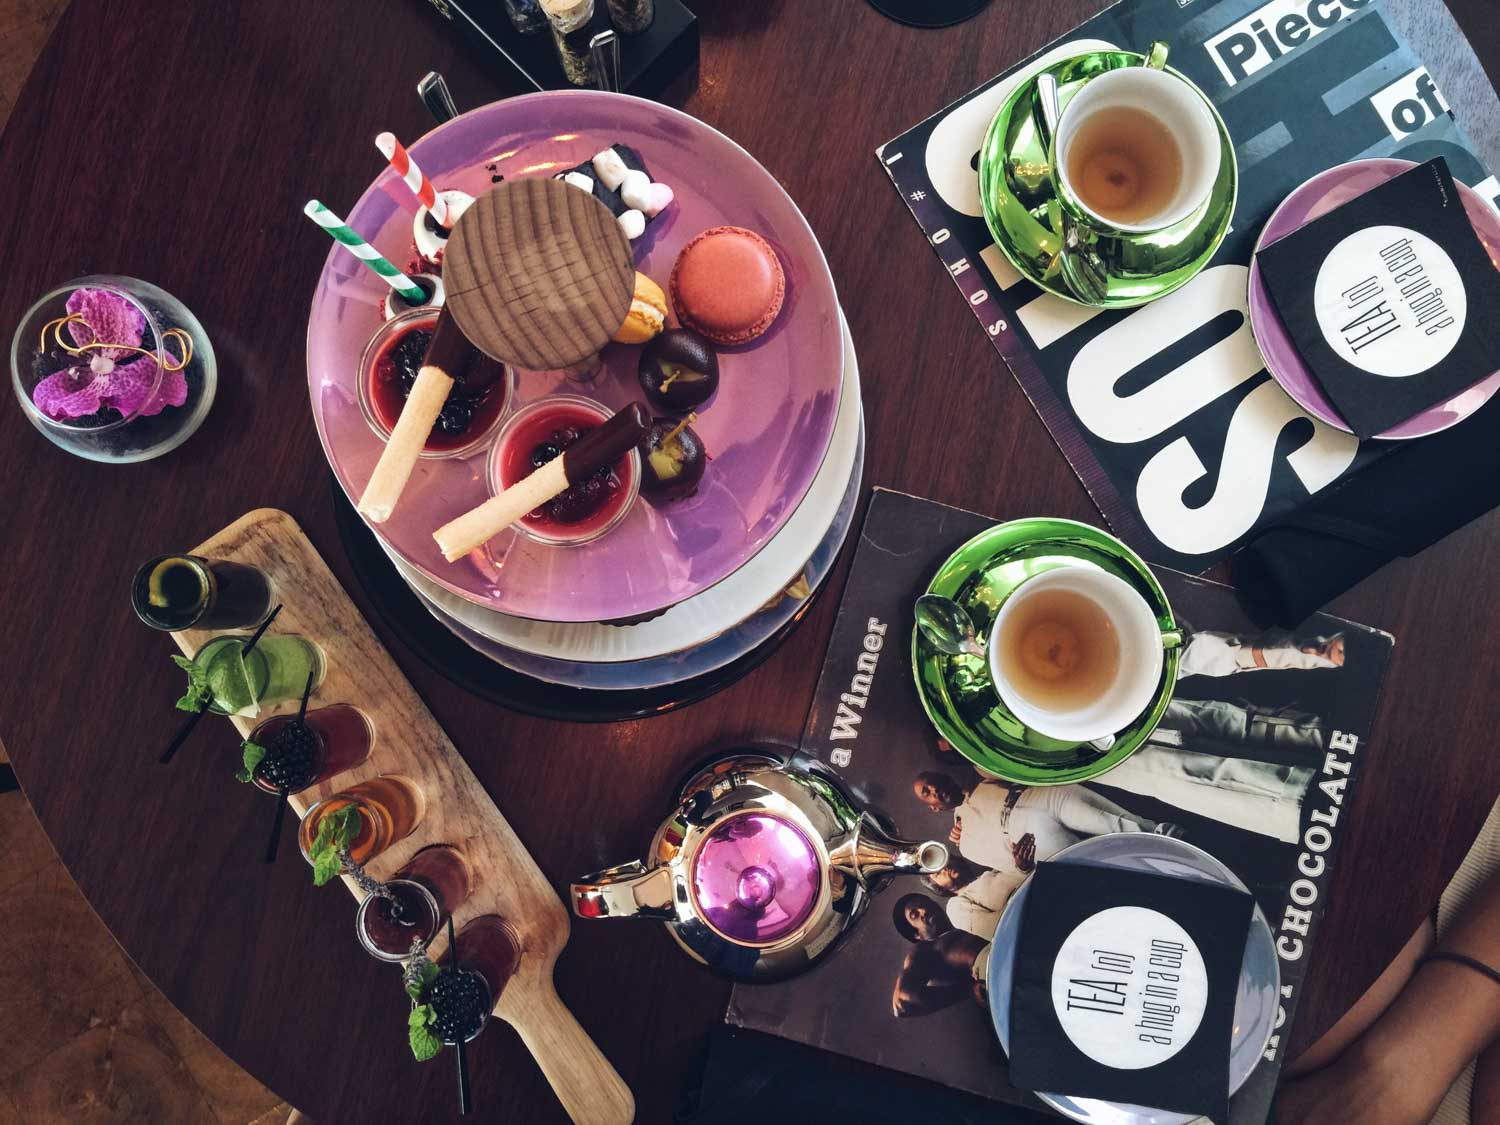 London's best afternoon teas - Glam Rock tea at K West